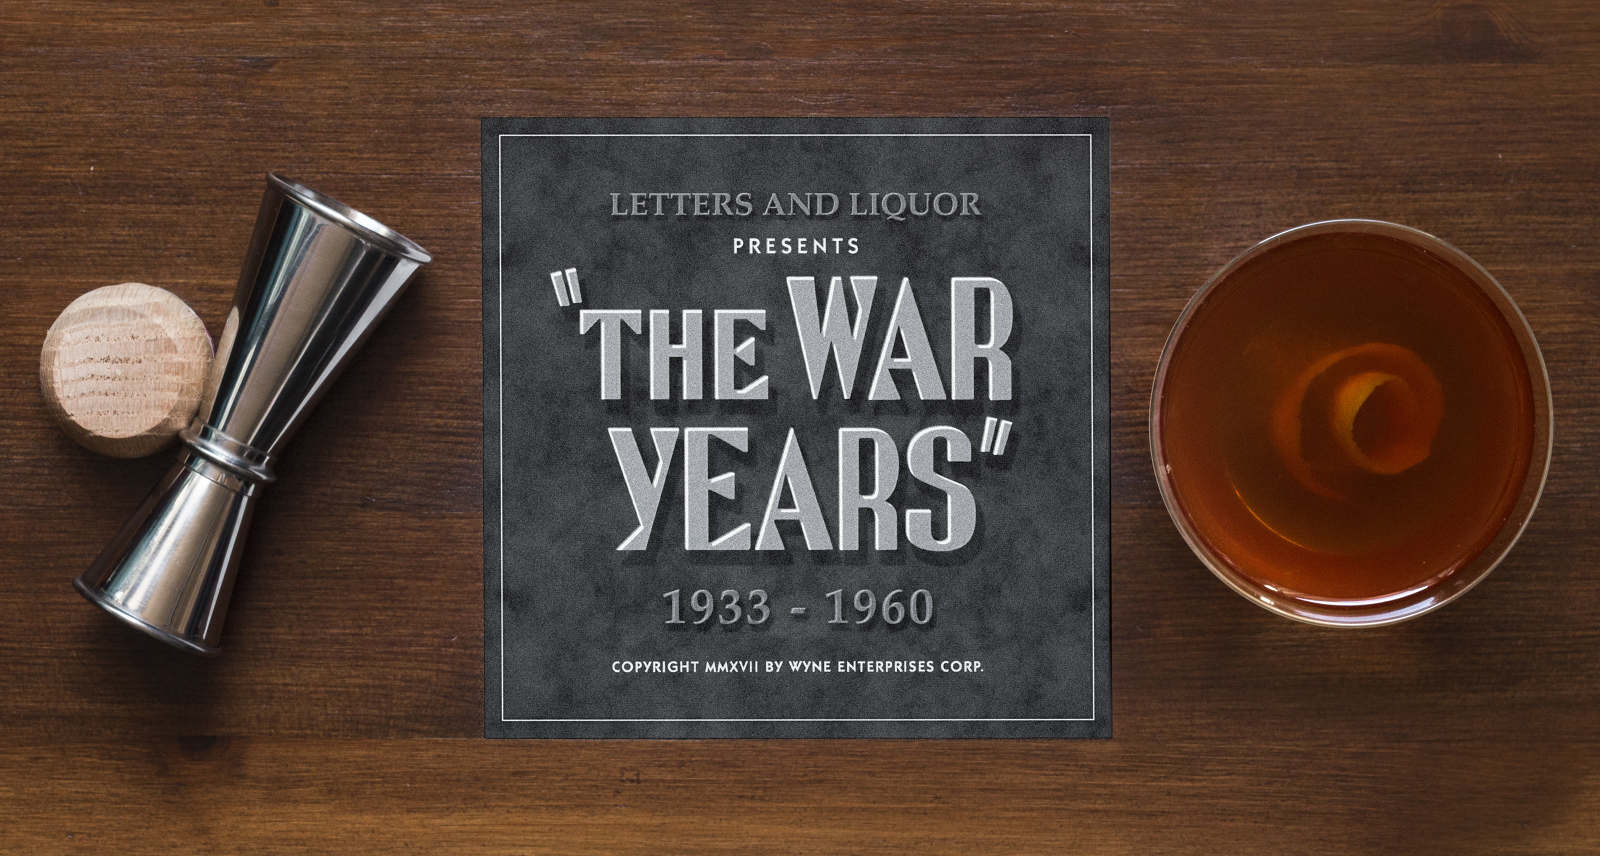 10  OLD FASHIONED: 1870s - Letters and Liquor